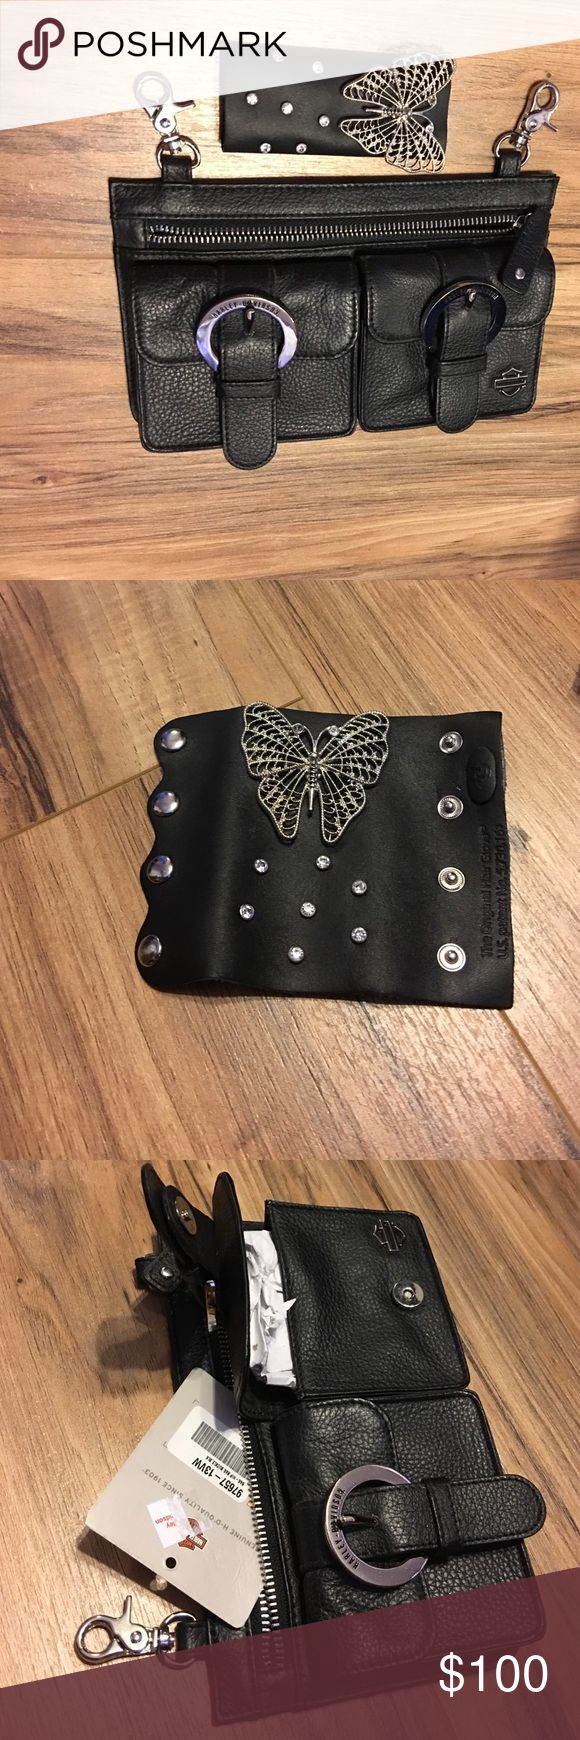 Haley Davidson belt bag and hair band Never been used brand new with tags! My husband bought it for me but I own too many bags! Harley-Davidson Bags Mini Bags